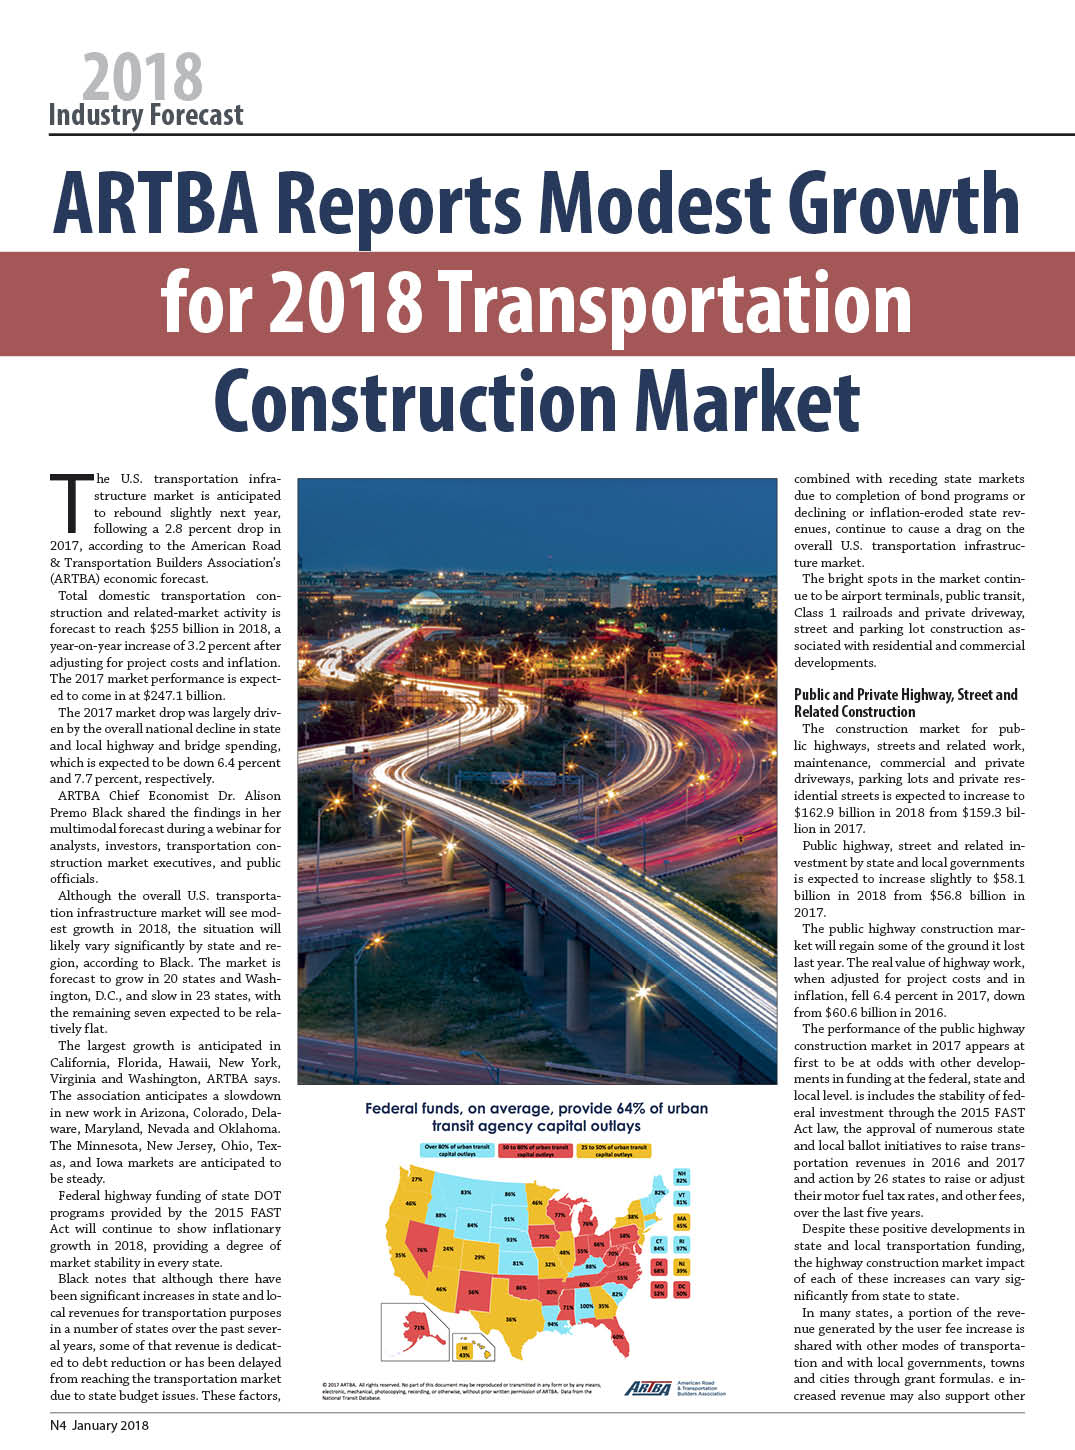 2018 mexico construction market growth to Construction project management software market 2018 global and china analysis, growth, trends and opportunities research report forecasting to 2023.